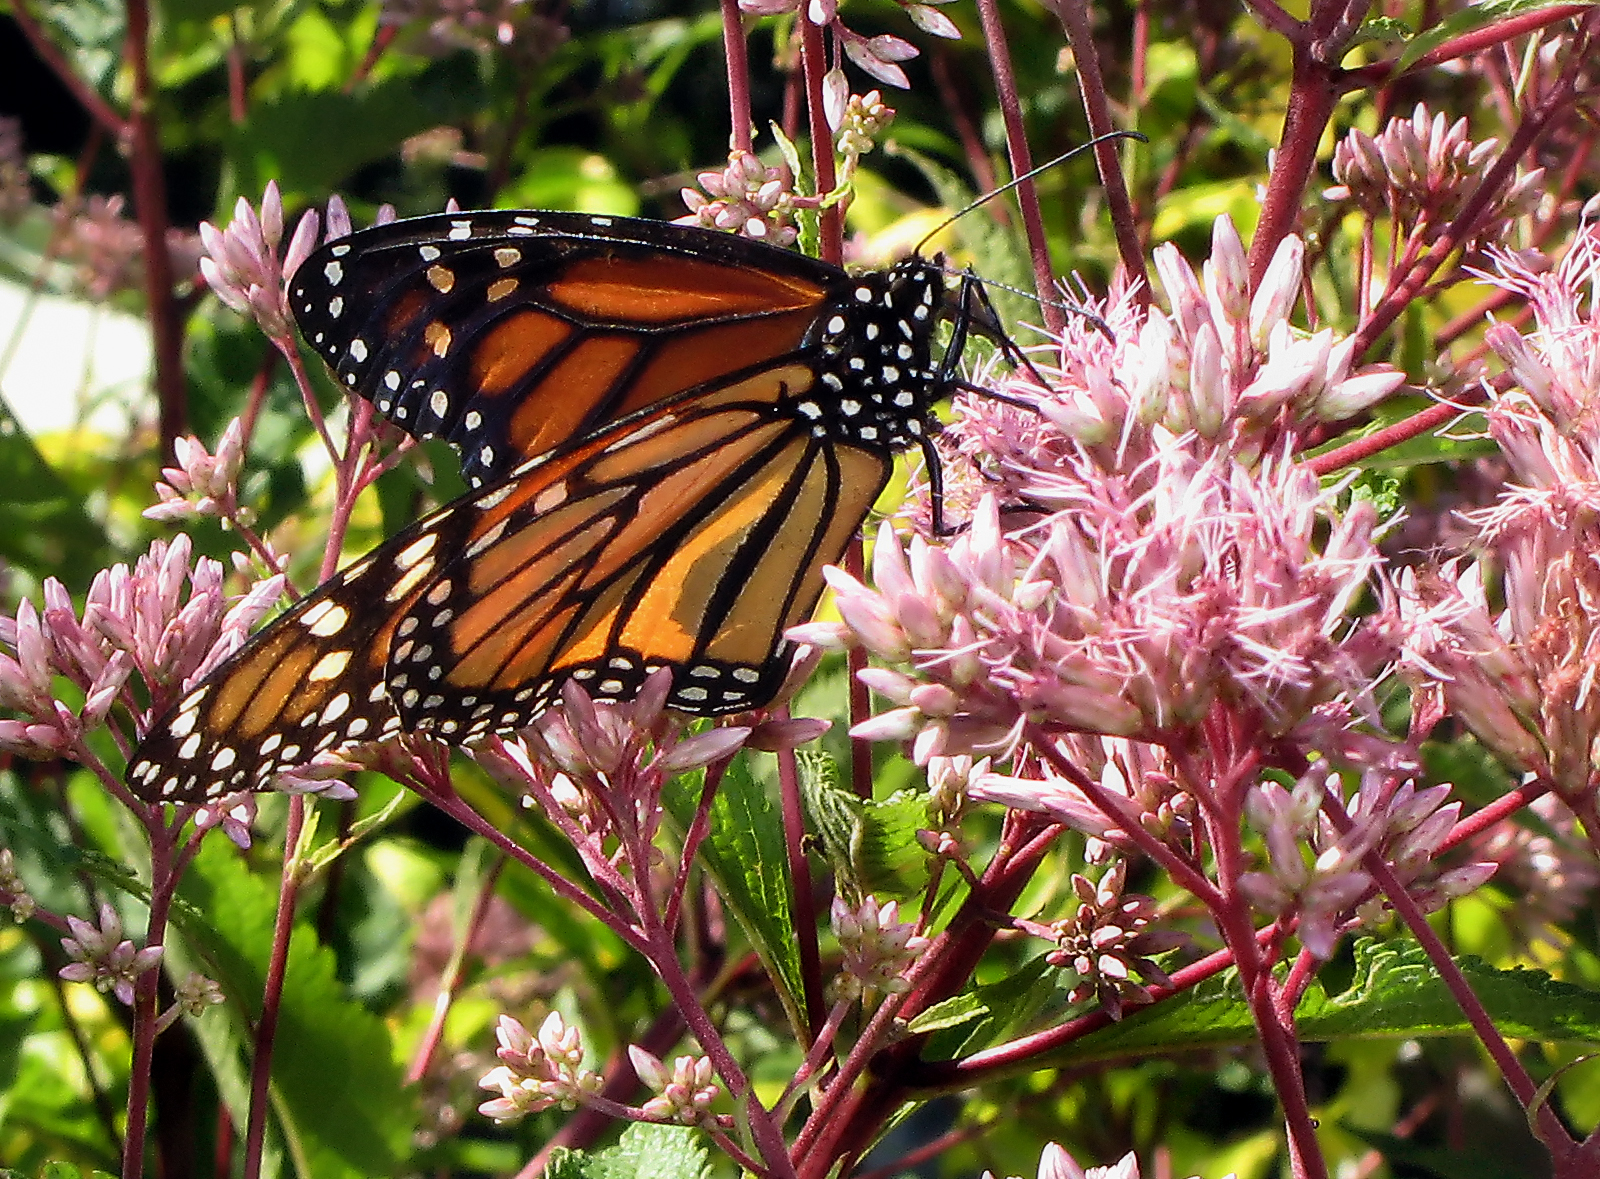 Monarch Butterfly feeding on a flowering plant